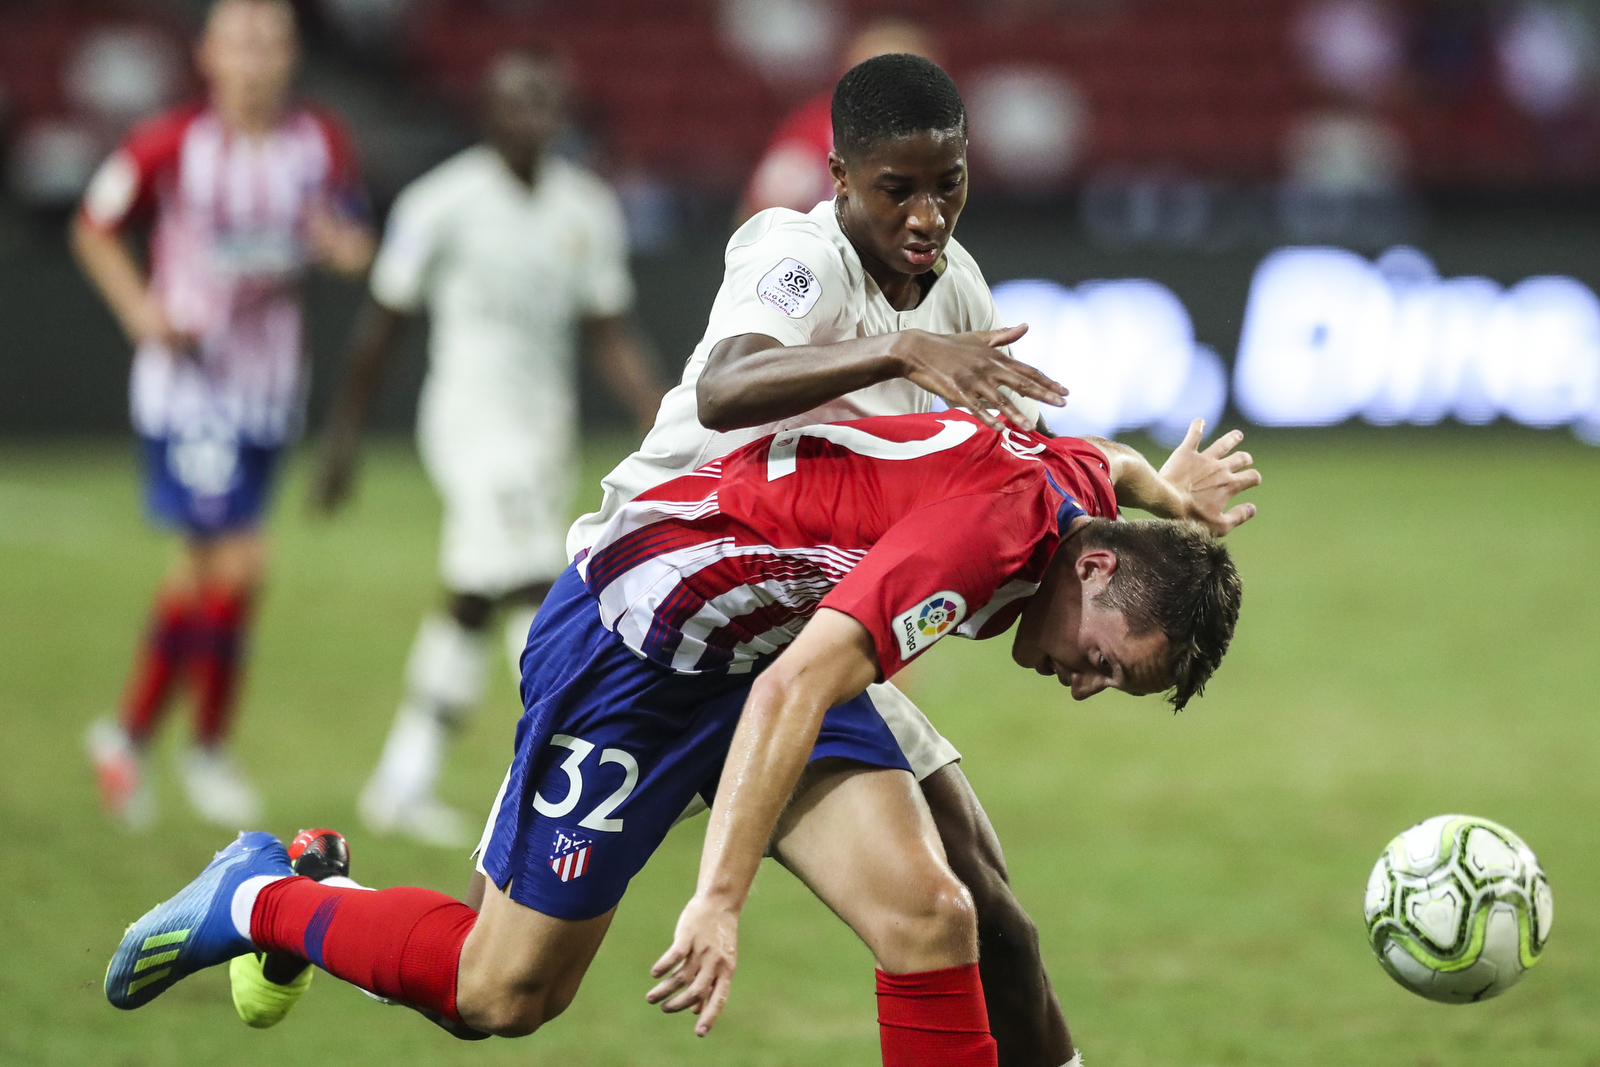 Atletico Madrid's Borja Garces, bottom, is fouled by Paris Saint-Germain's Moussa Sissako during the International Champions Cup match between Paris Saint-Germain and Atletico Madrid in Singapore, Monday, July 30, 2018. (AP Photo/Yong Teck Lim)